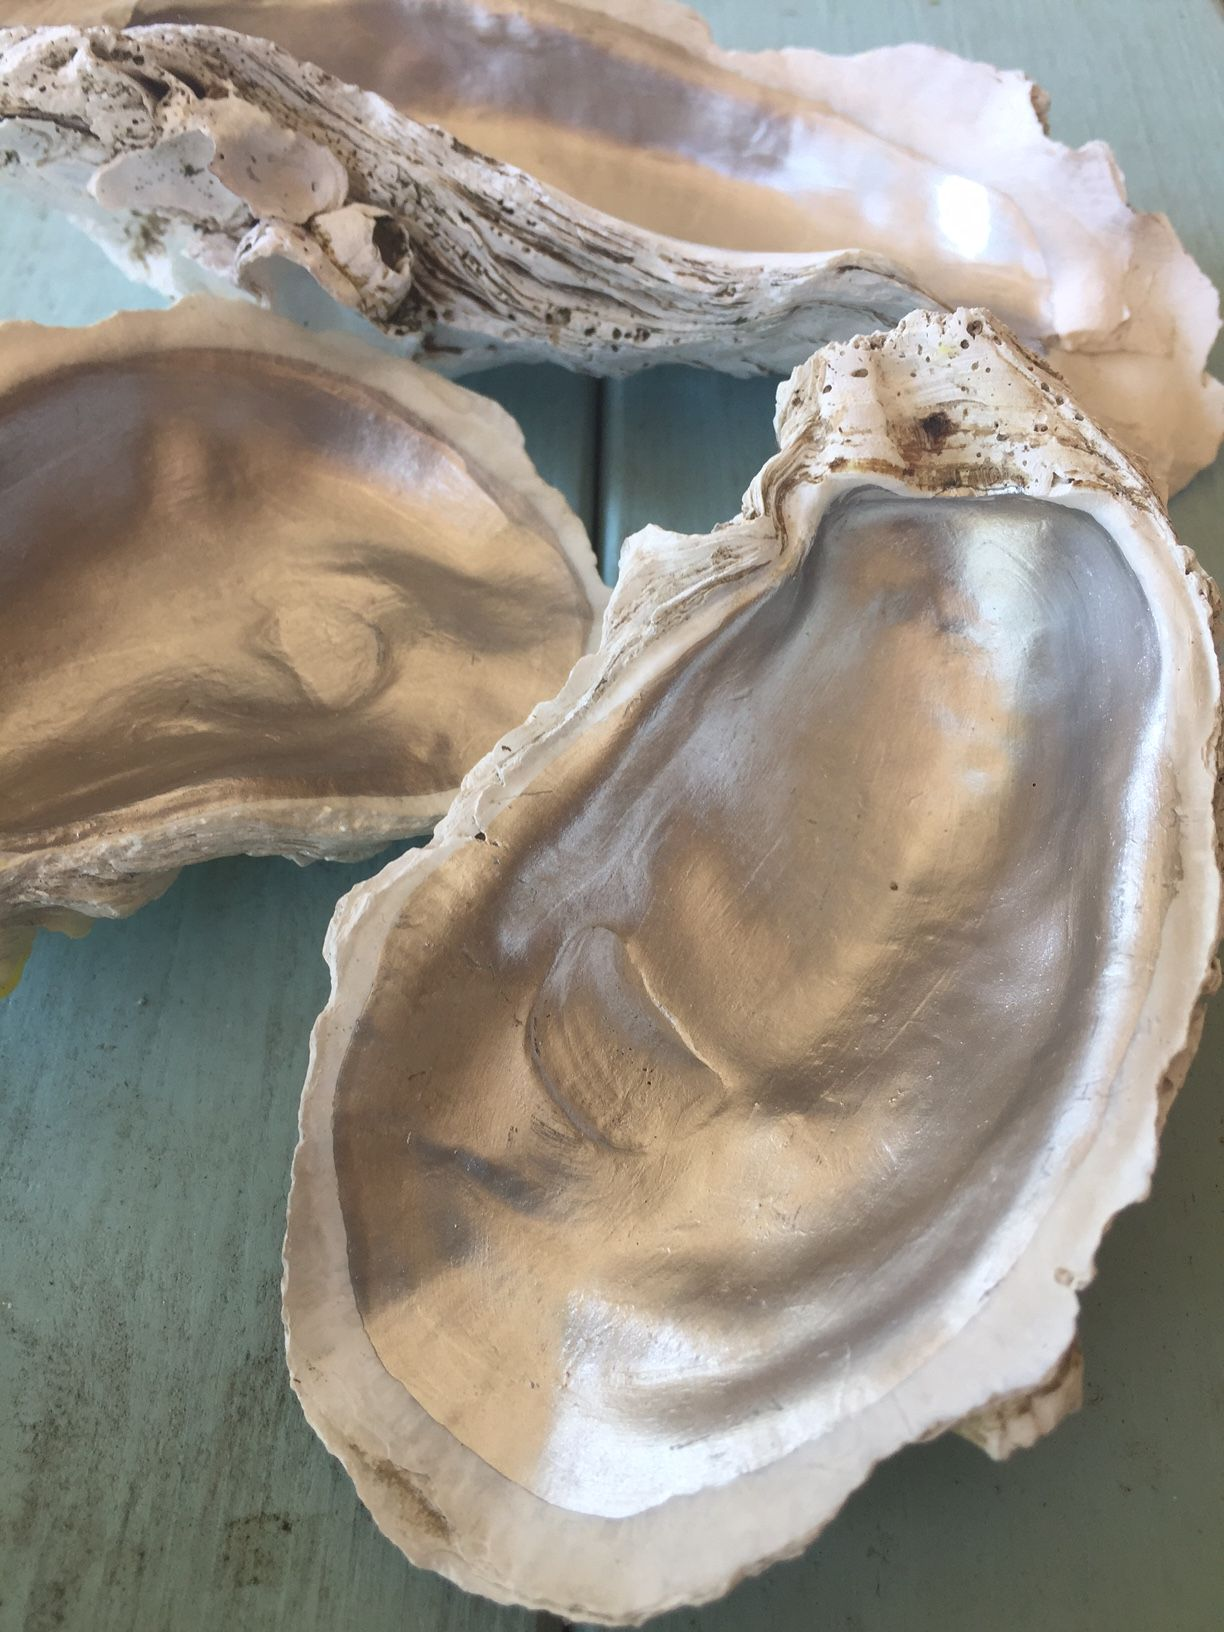 Oysters on the Half Shell Decorative Tile